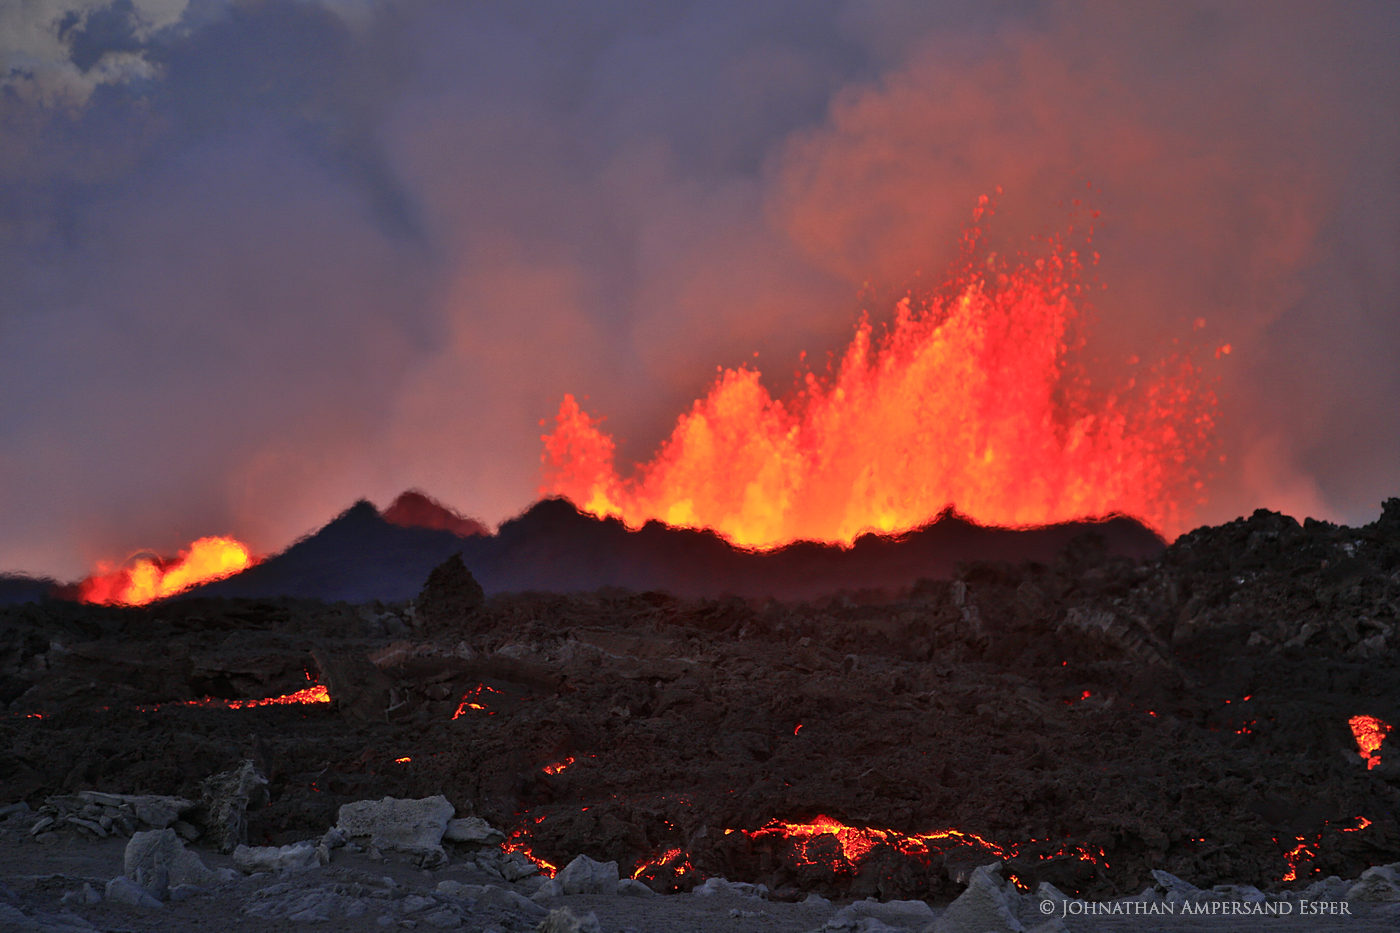 2014, Baugur, Bárðarbunga, Holuhraun, Iceland, crater, erupting, eruption, flow, lava, lava fountain, photo